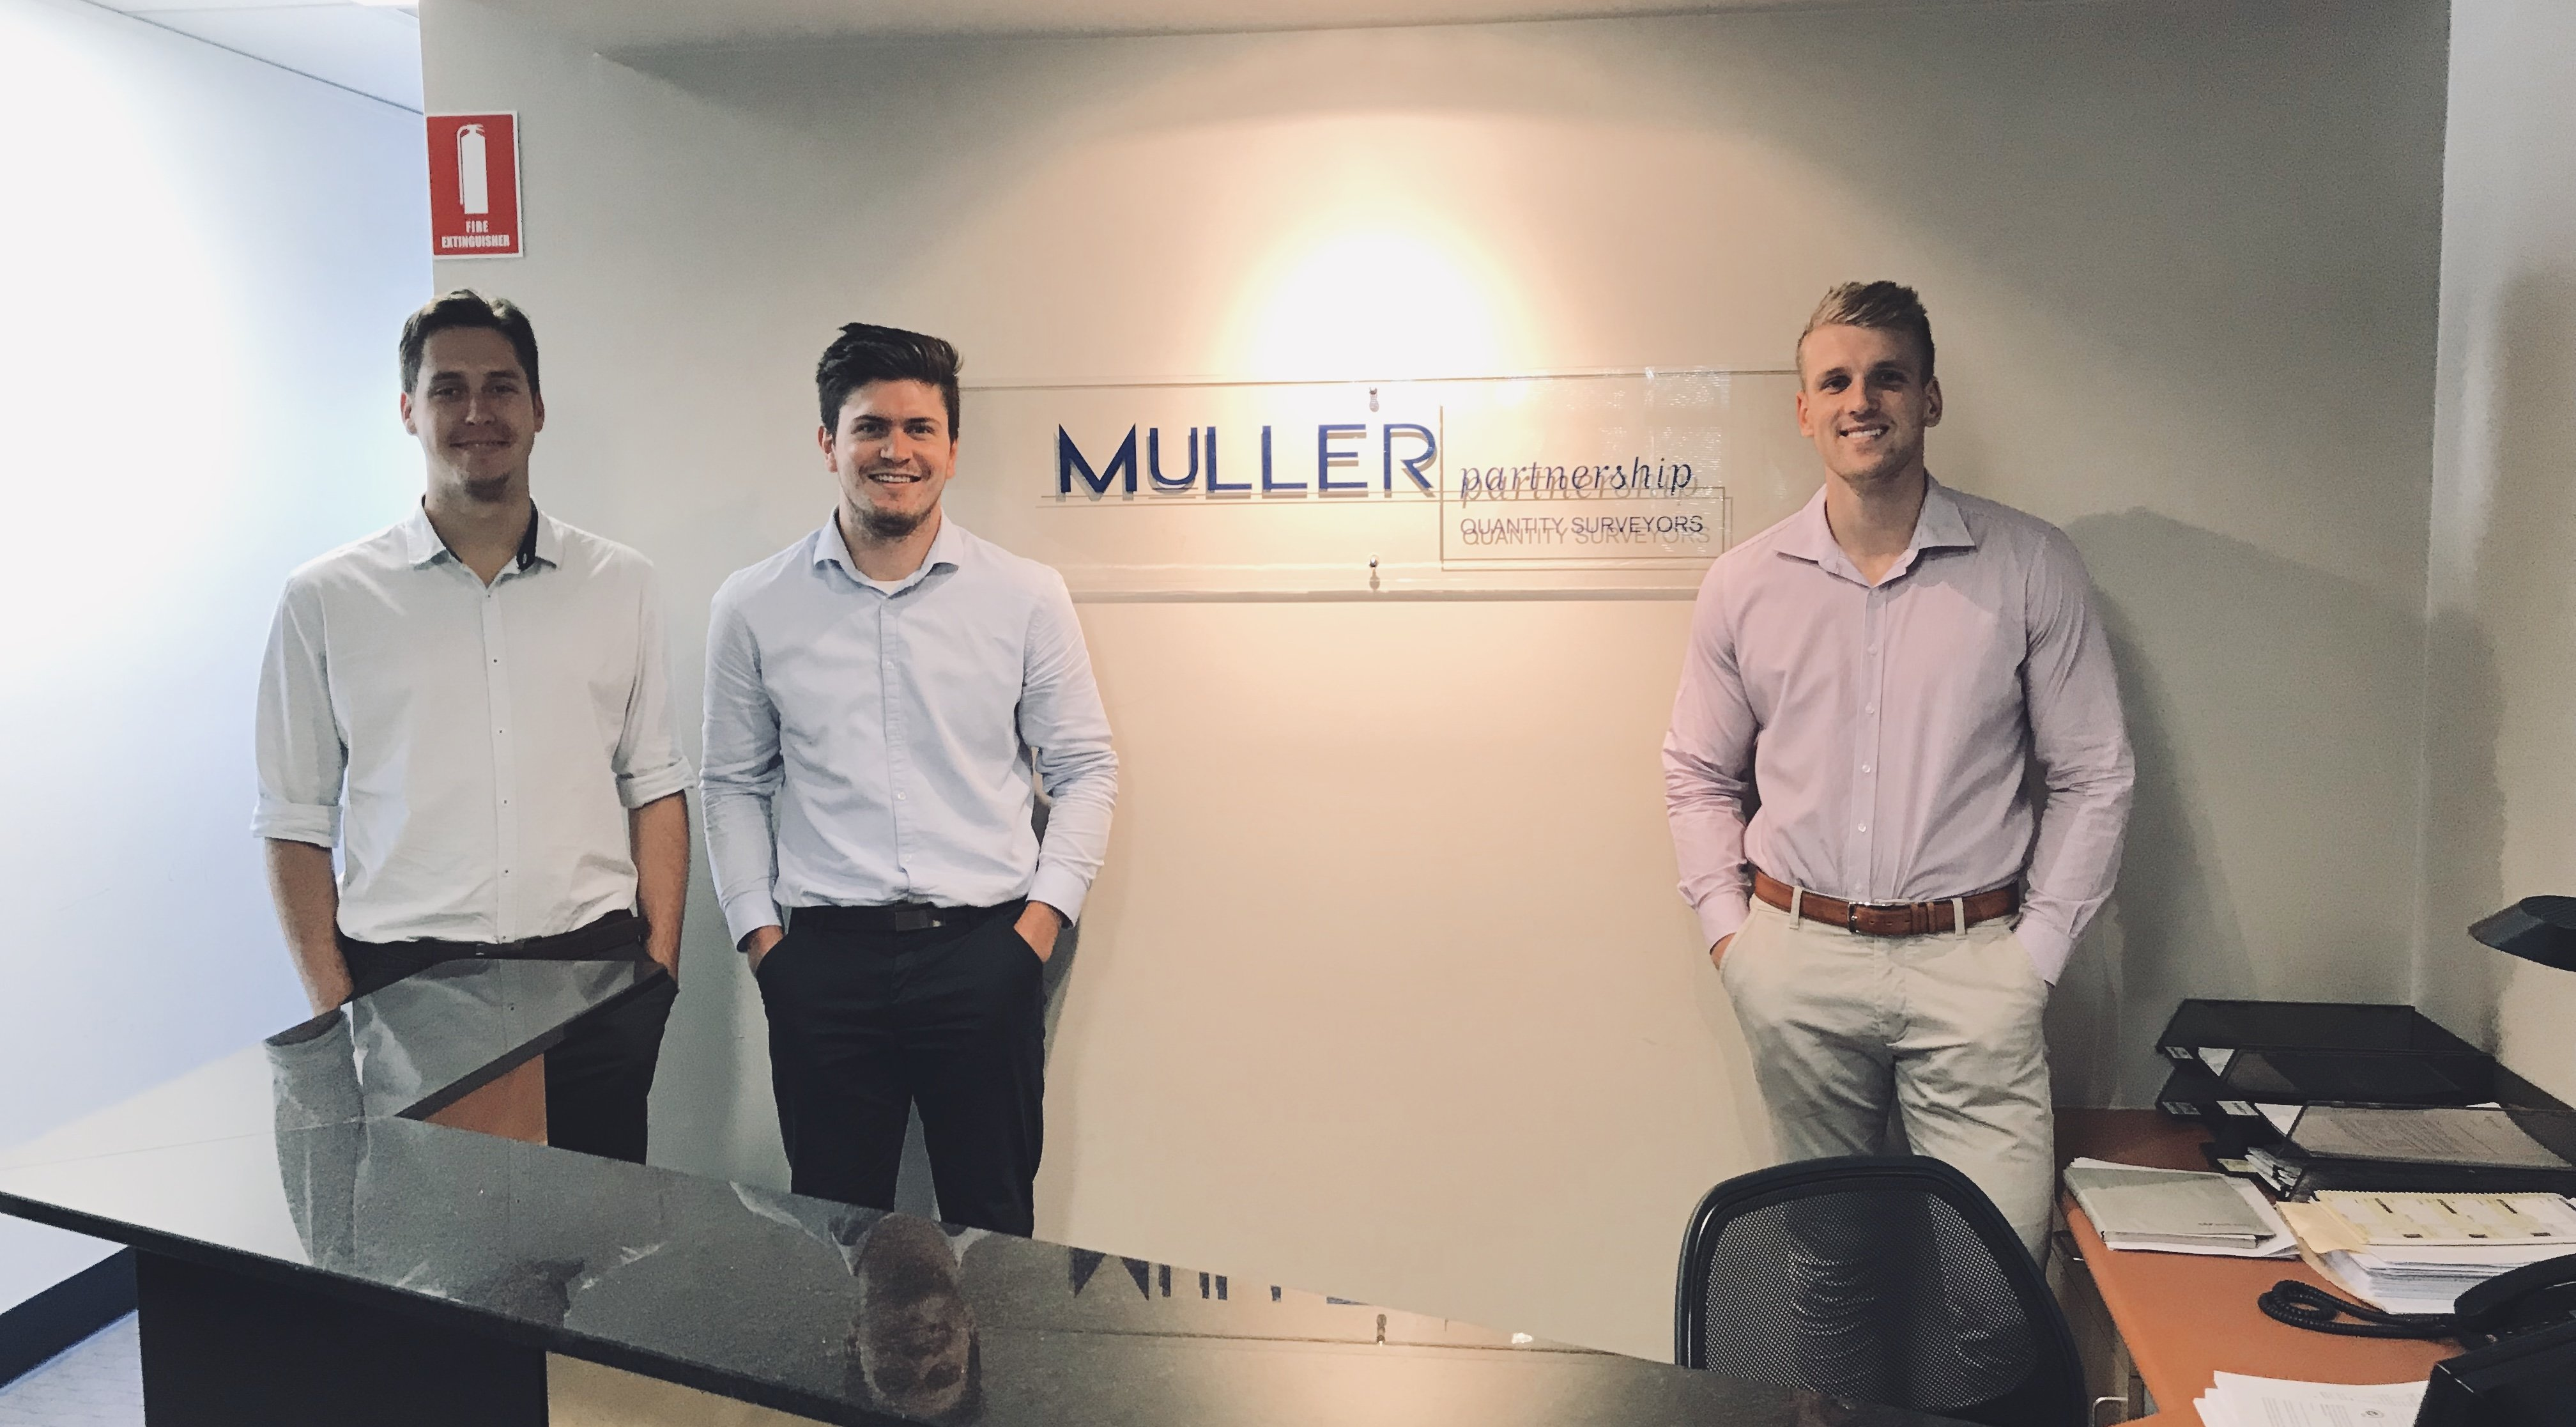 Muller Partnership are excited to welcome our new cadets Joseph, Nicholas and Brad in 2019 to the Newcastle office.  Muller Partnership prides ourselves on training undergraduate cadet employees. The cadetship program is well established, with all existing employees providing a close network of shared knowledge and meaningful industry experience to progress the cadets into a future QS career.